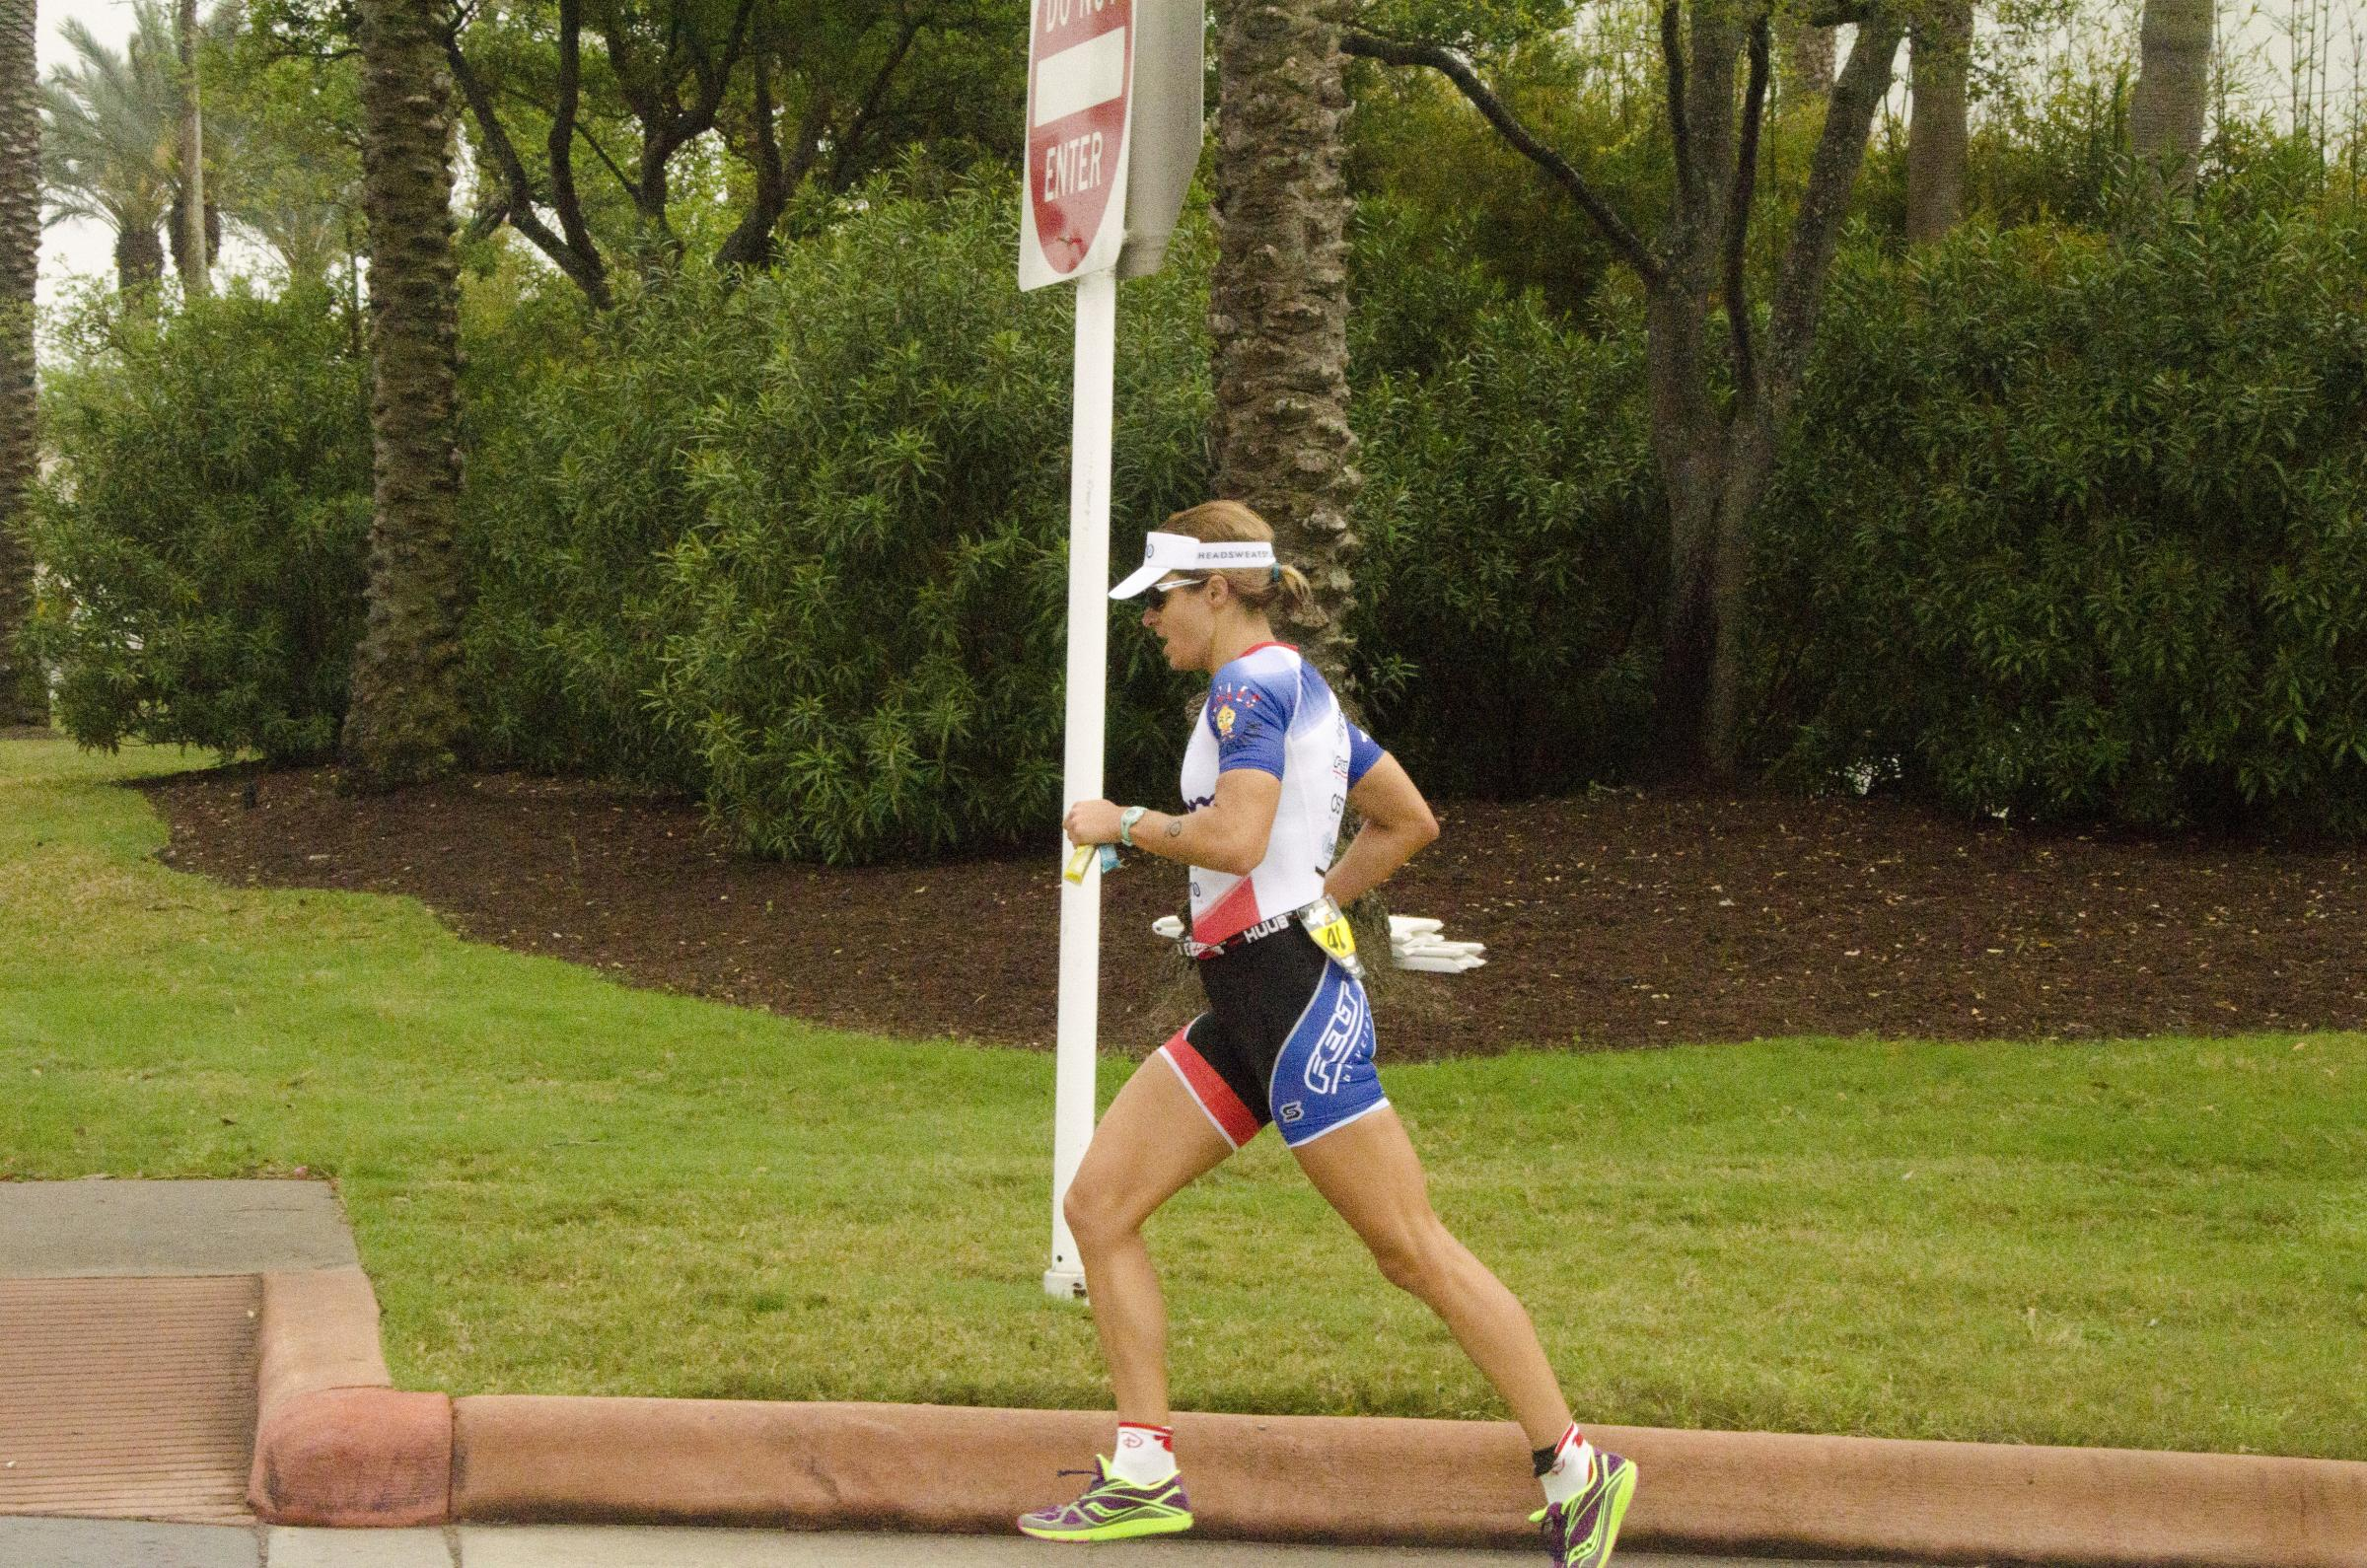 Emma-Kate Lidbury taking part in the Ironman 70.3 in Galveston, Texas